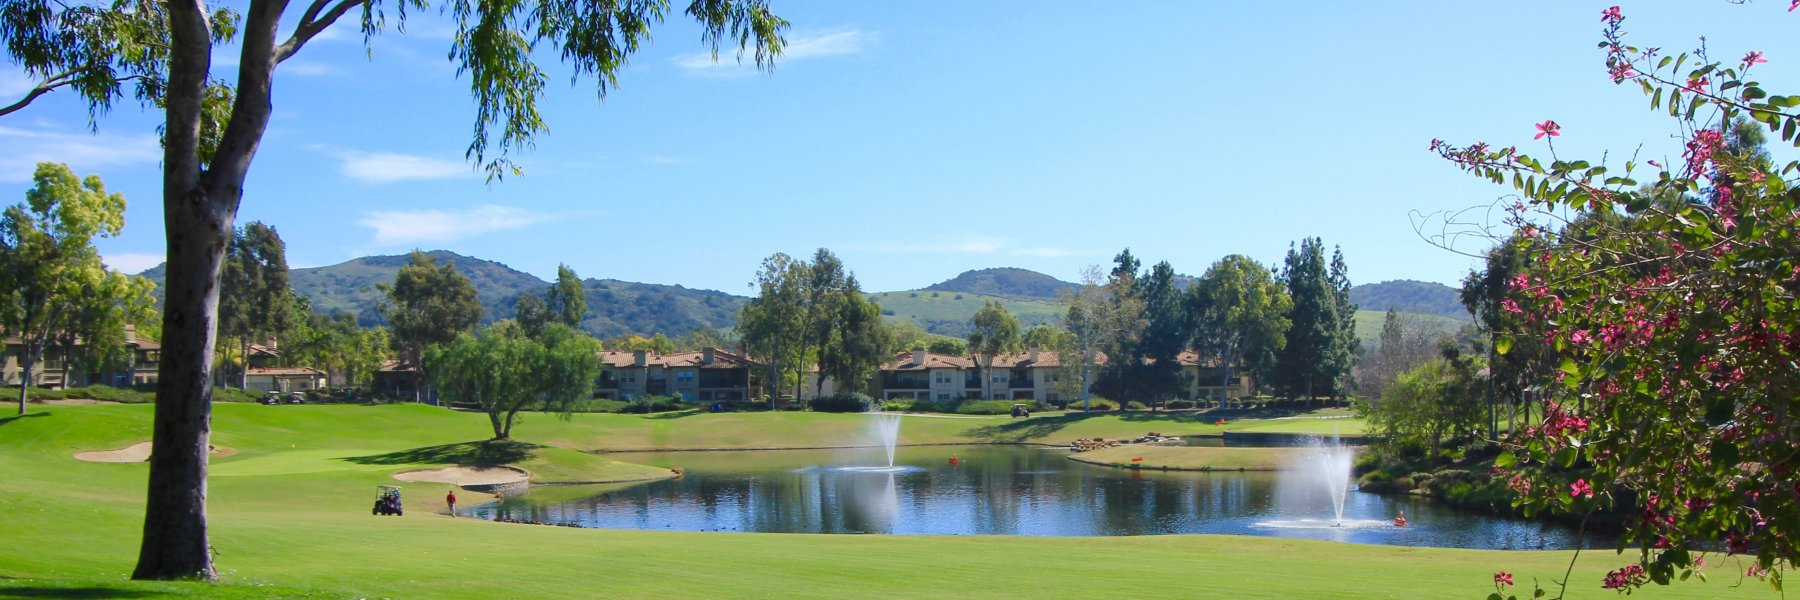 Tierra Linda is a community of homes in Rancho Santa Margarita California